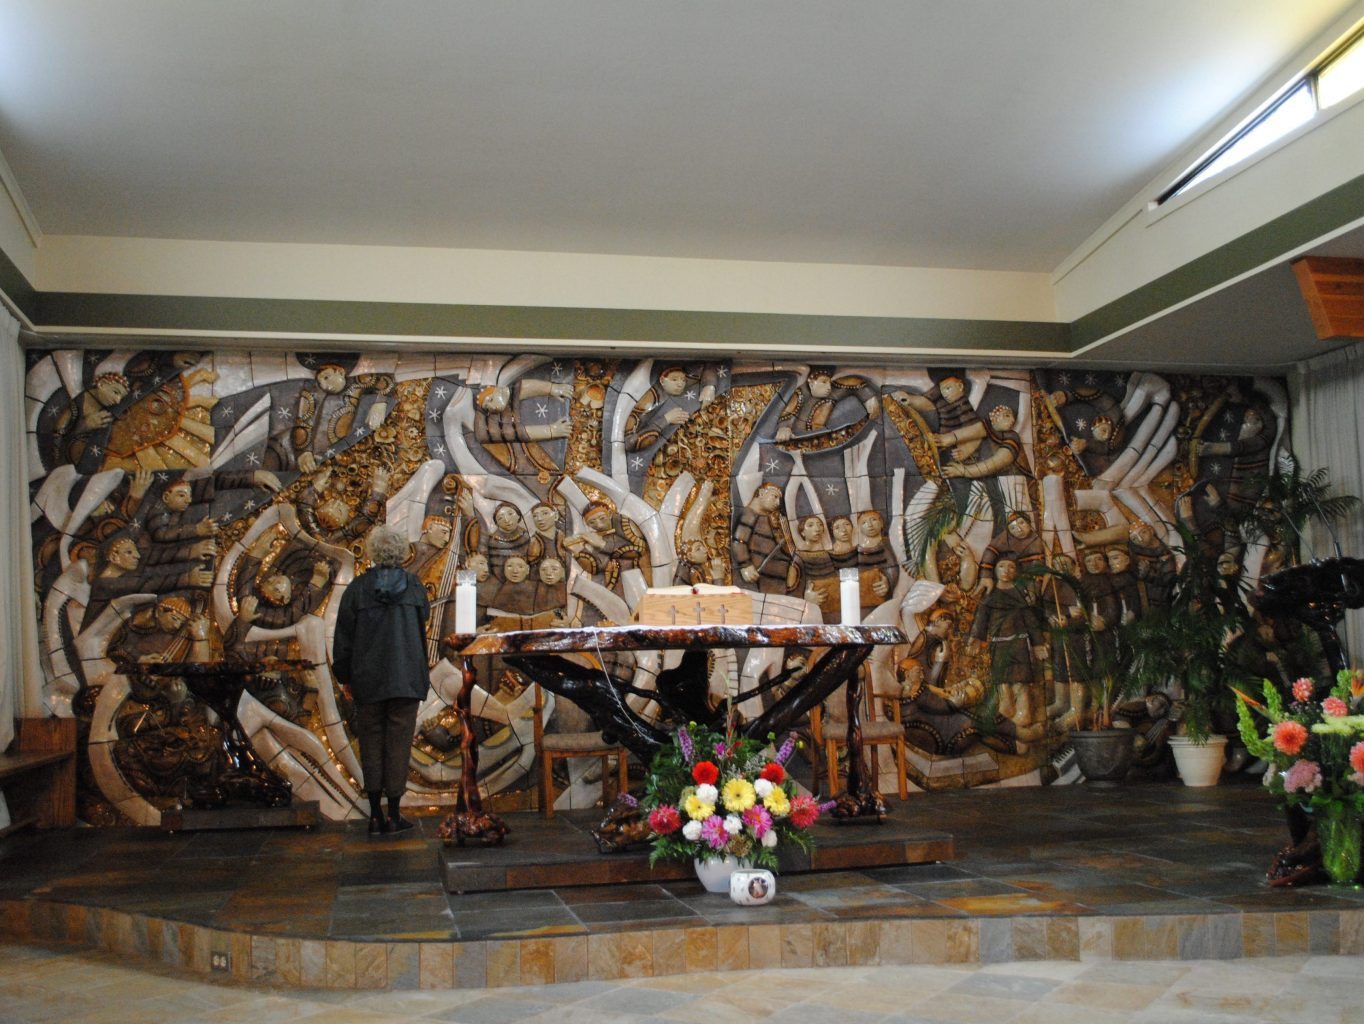 Female artist viewing her ceramic mural installed on a wall behind the altar of a church.